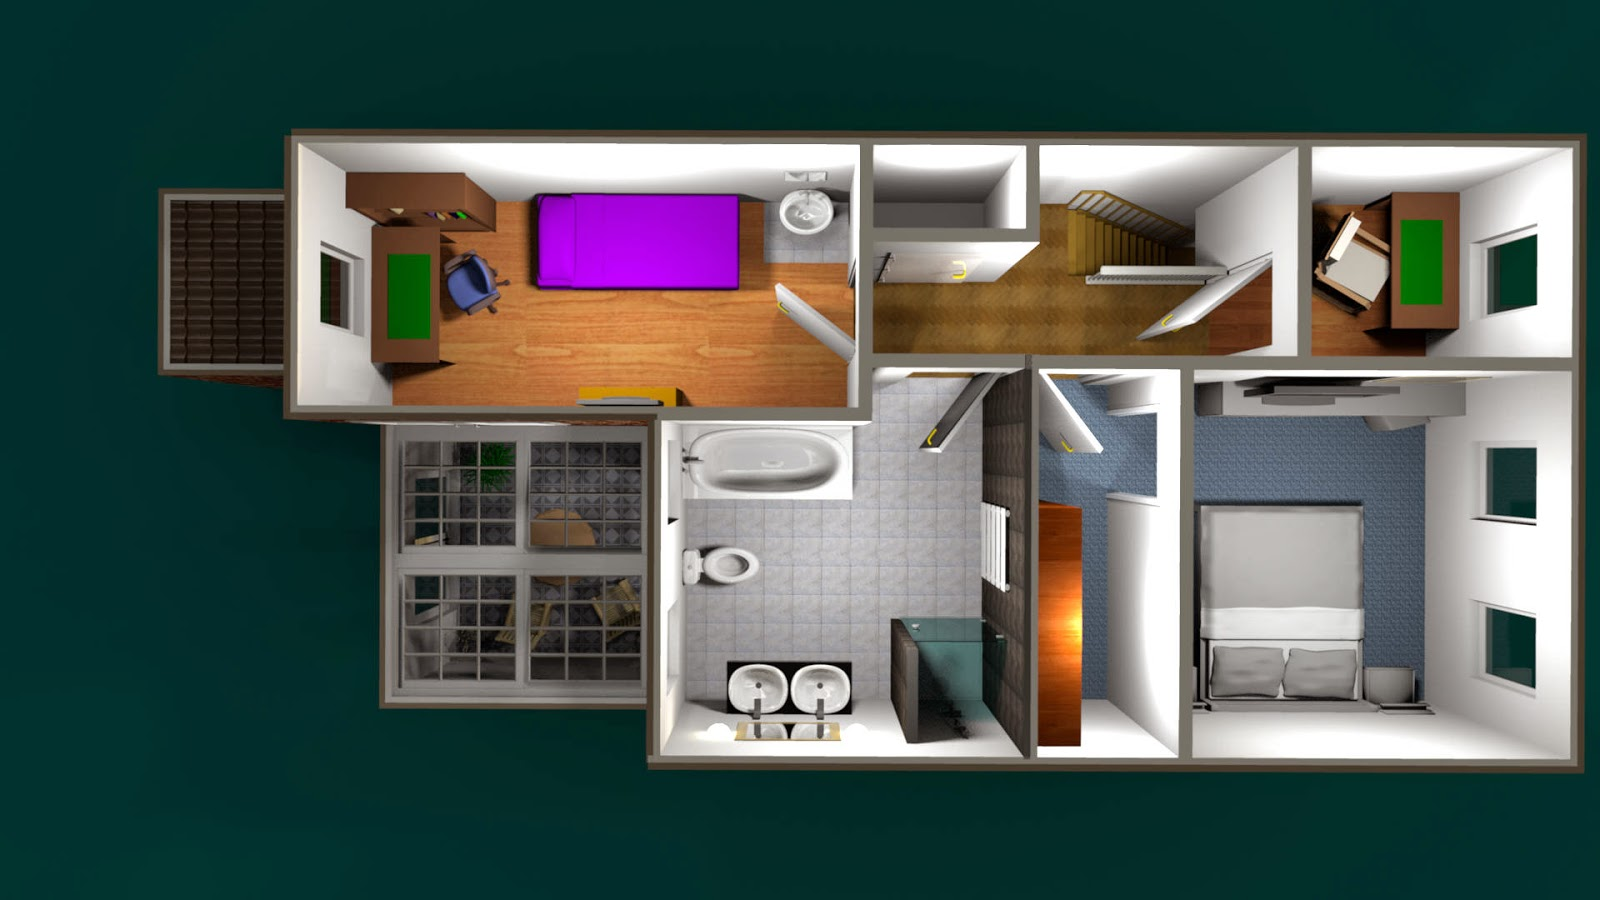 Sweet home 3d gratis para pc dise a tu casa oduber city for Disena tu casa gratis